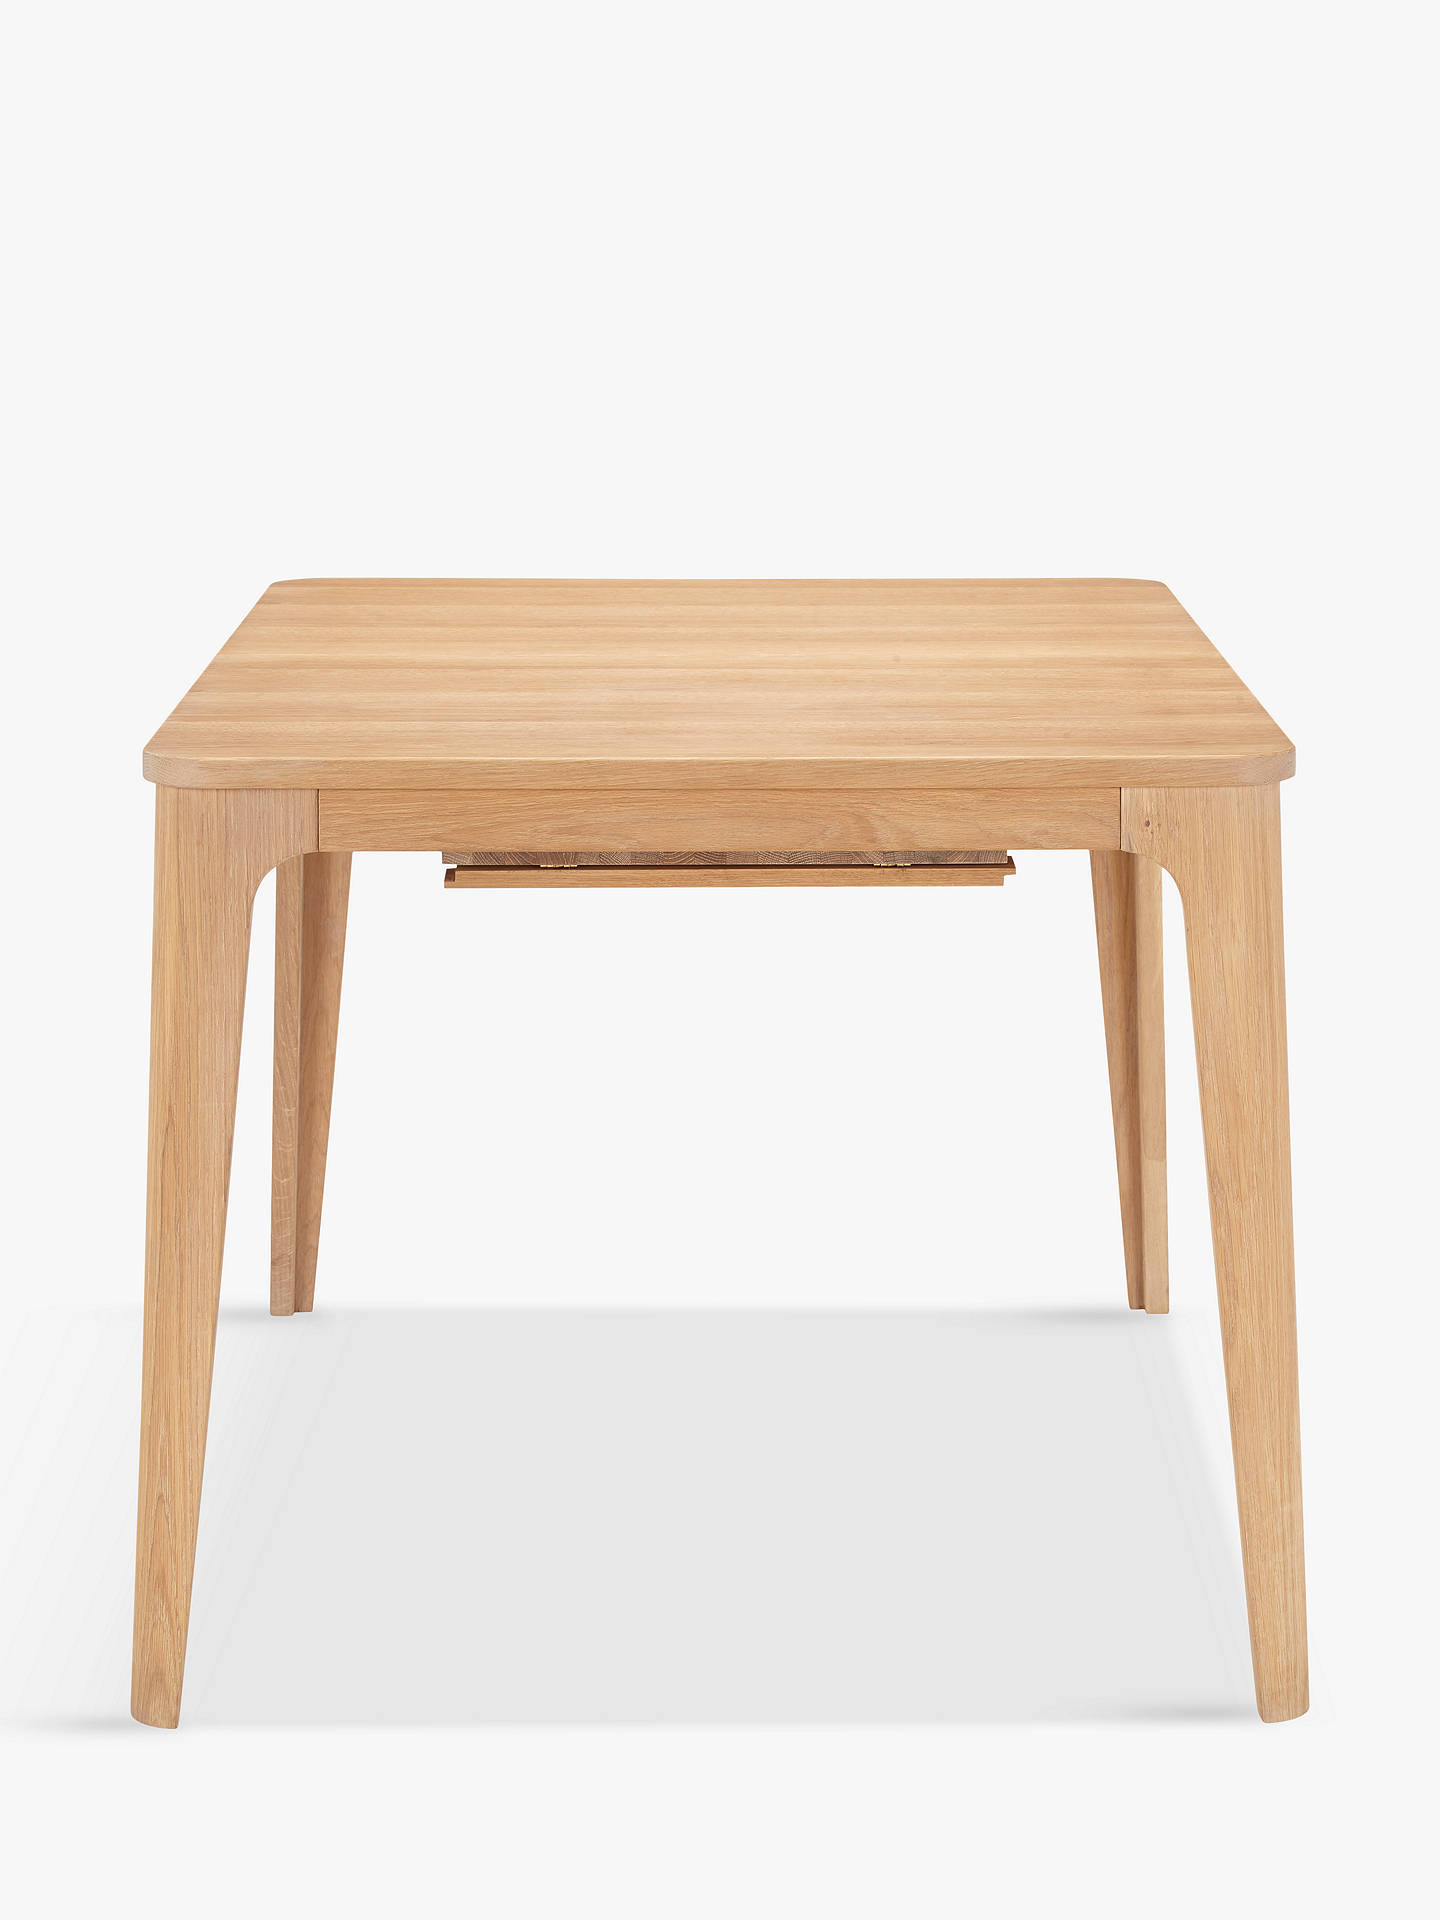 Ebbe Gehl For John Lewis Mira 4 8 Seater Extending Dining Table Natural At John Lewis Partners